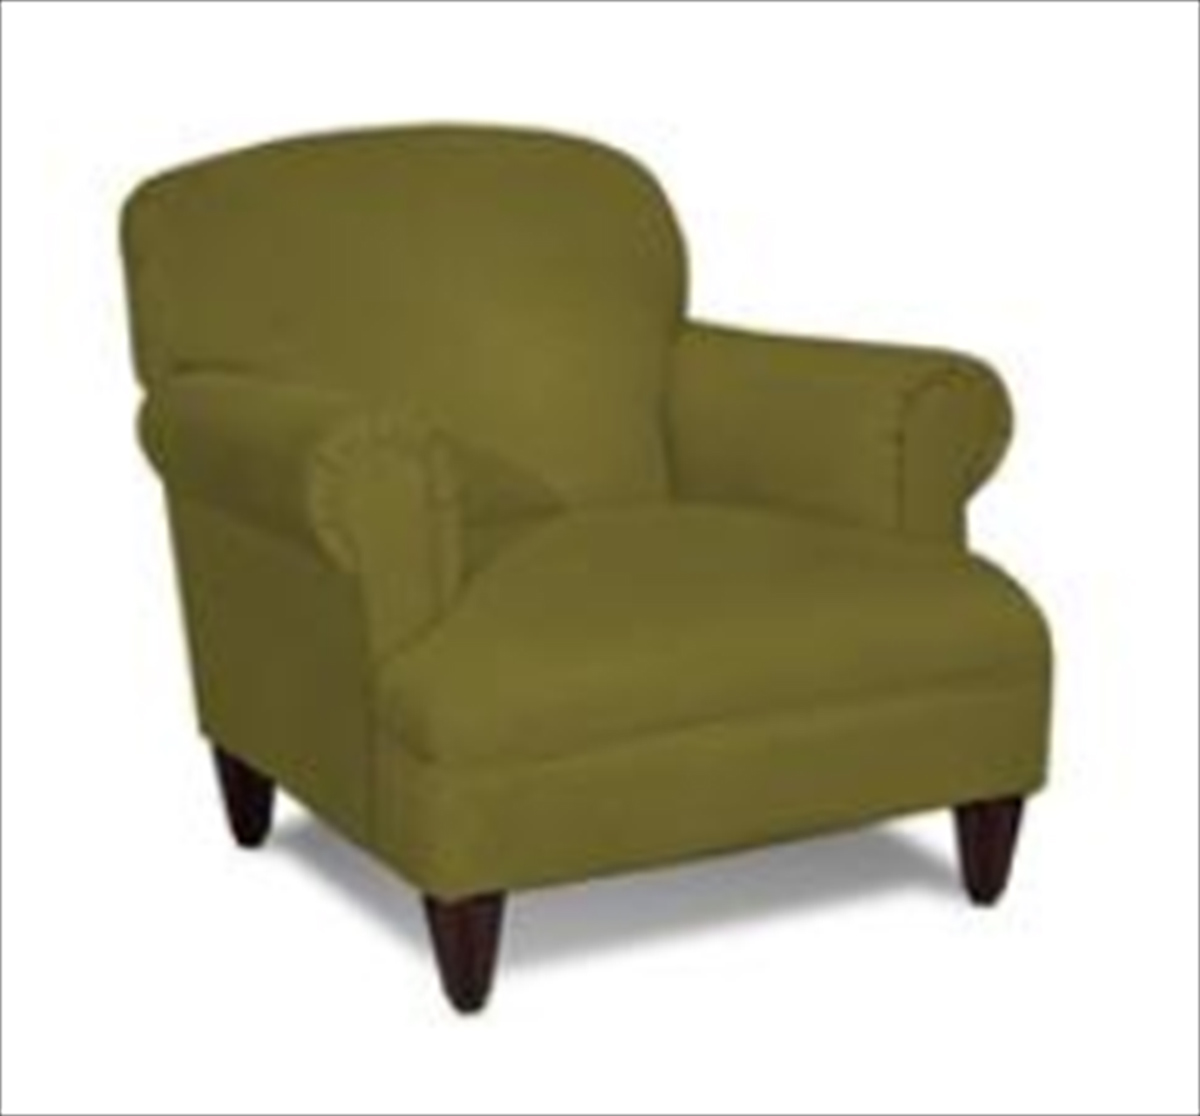 Klaussner Wrigley Chair - Belsire Apple